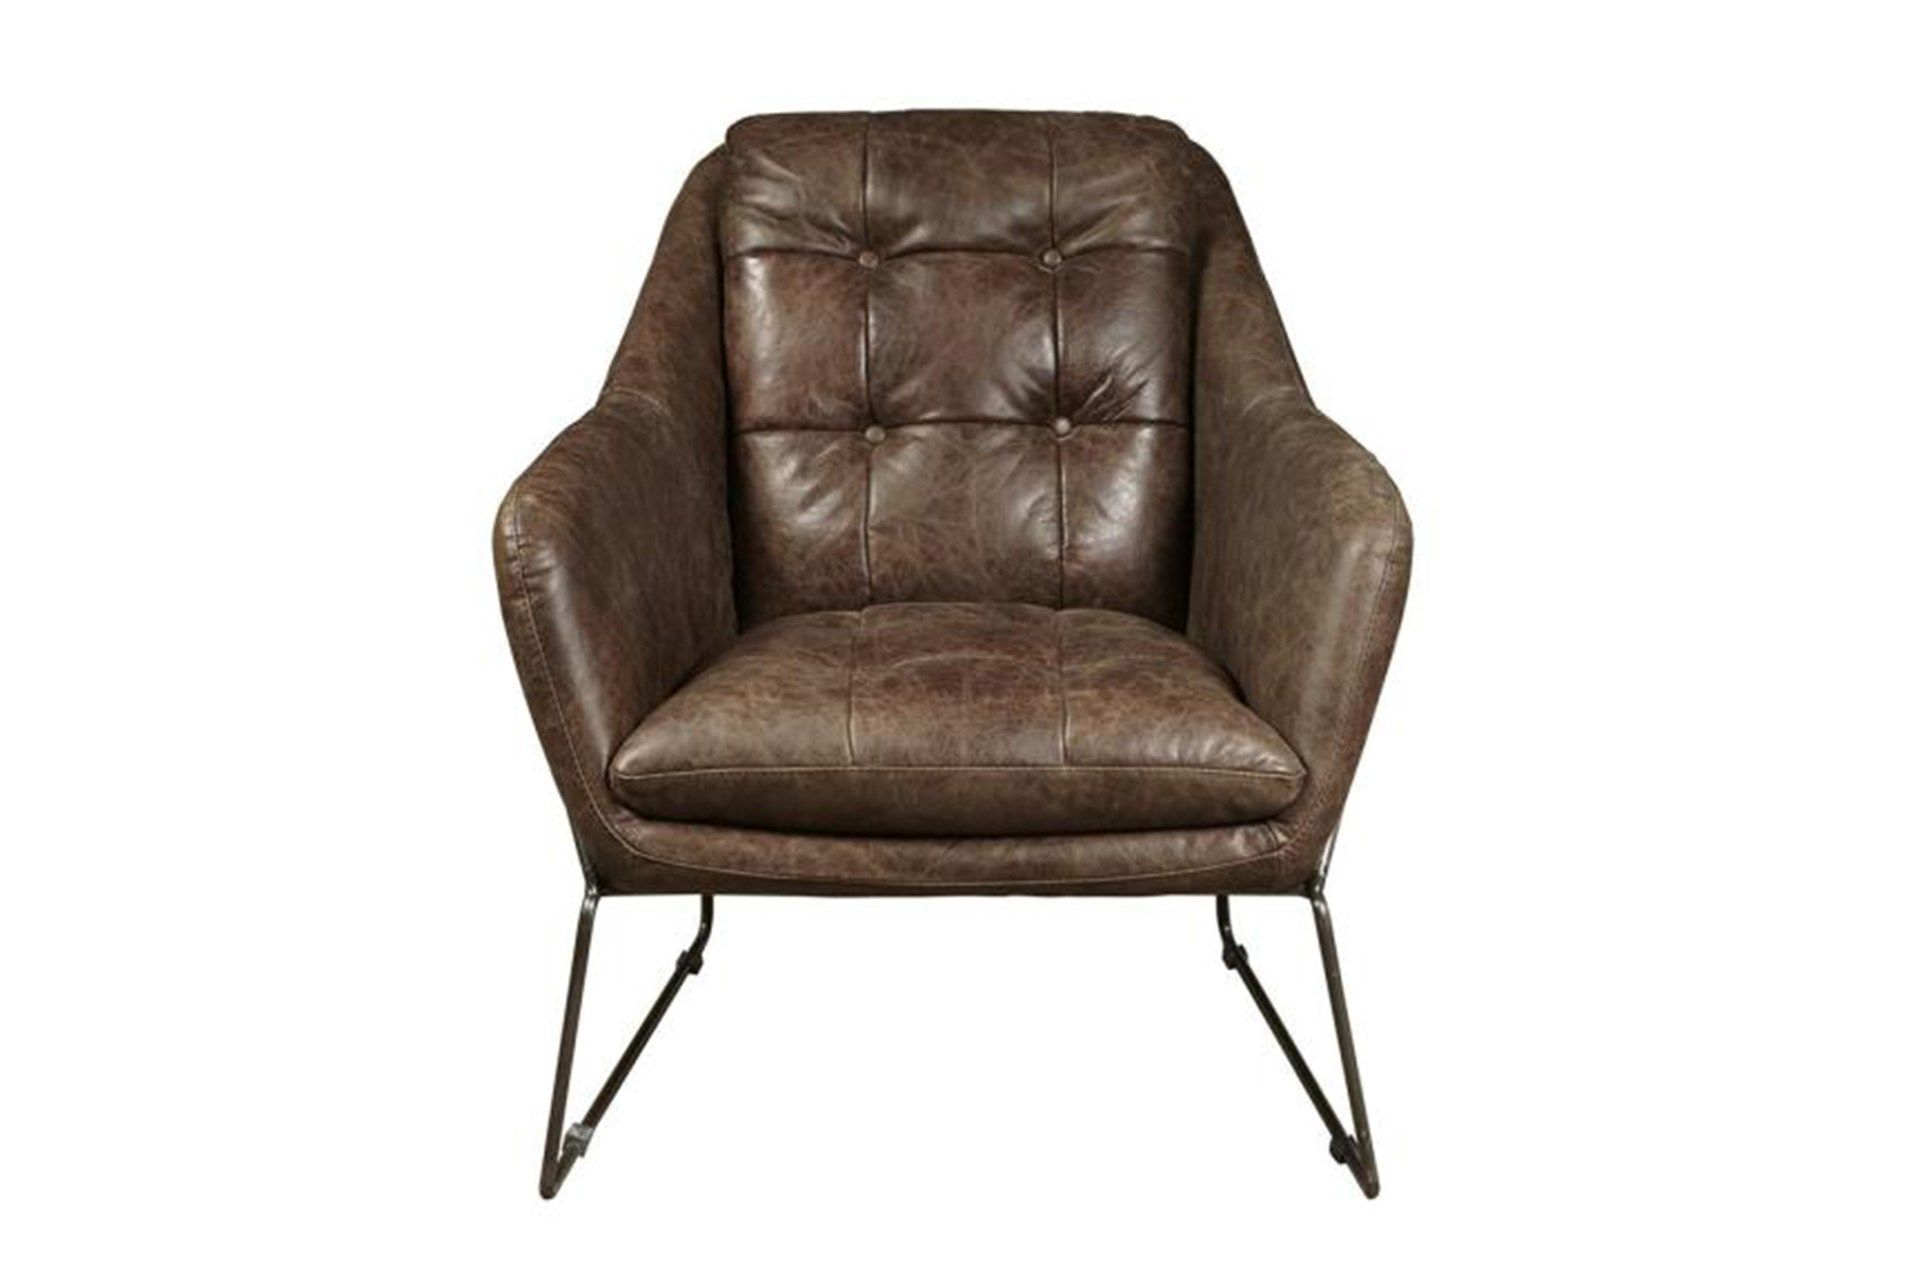 Mocha Leather & Metal Accent Chair, Brown | Metal Accents, Metals Within Harbor Grey Swivel Accent Chairs (Image 15 of 20)